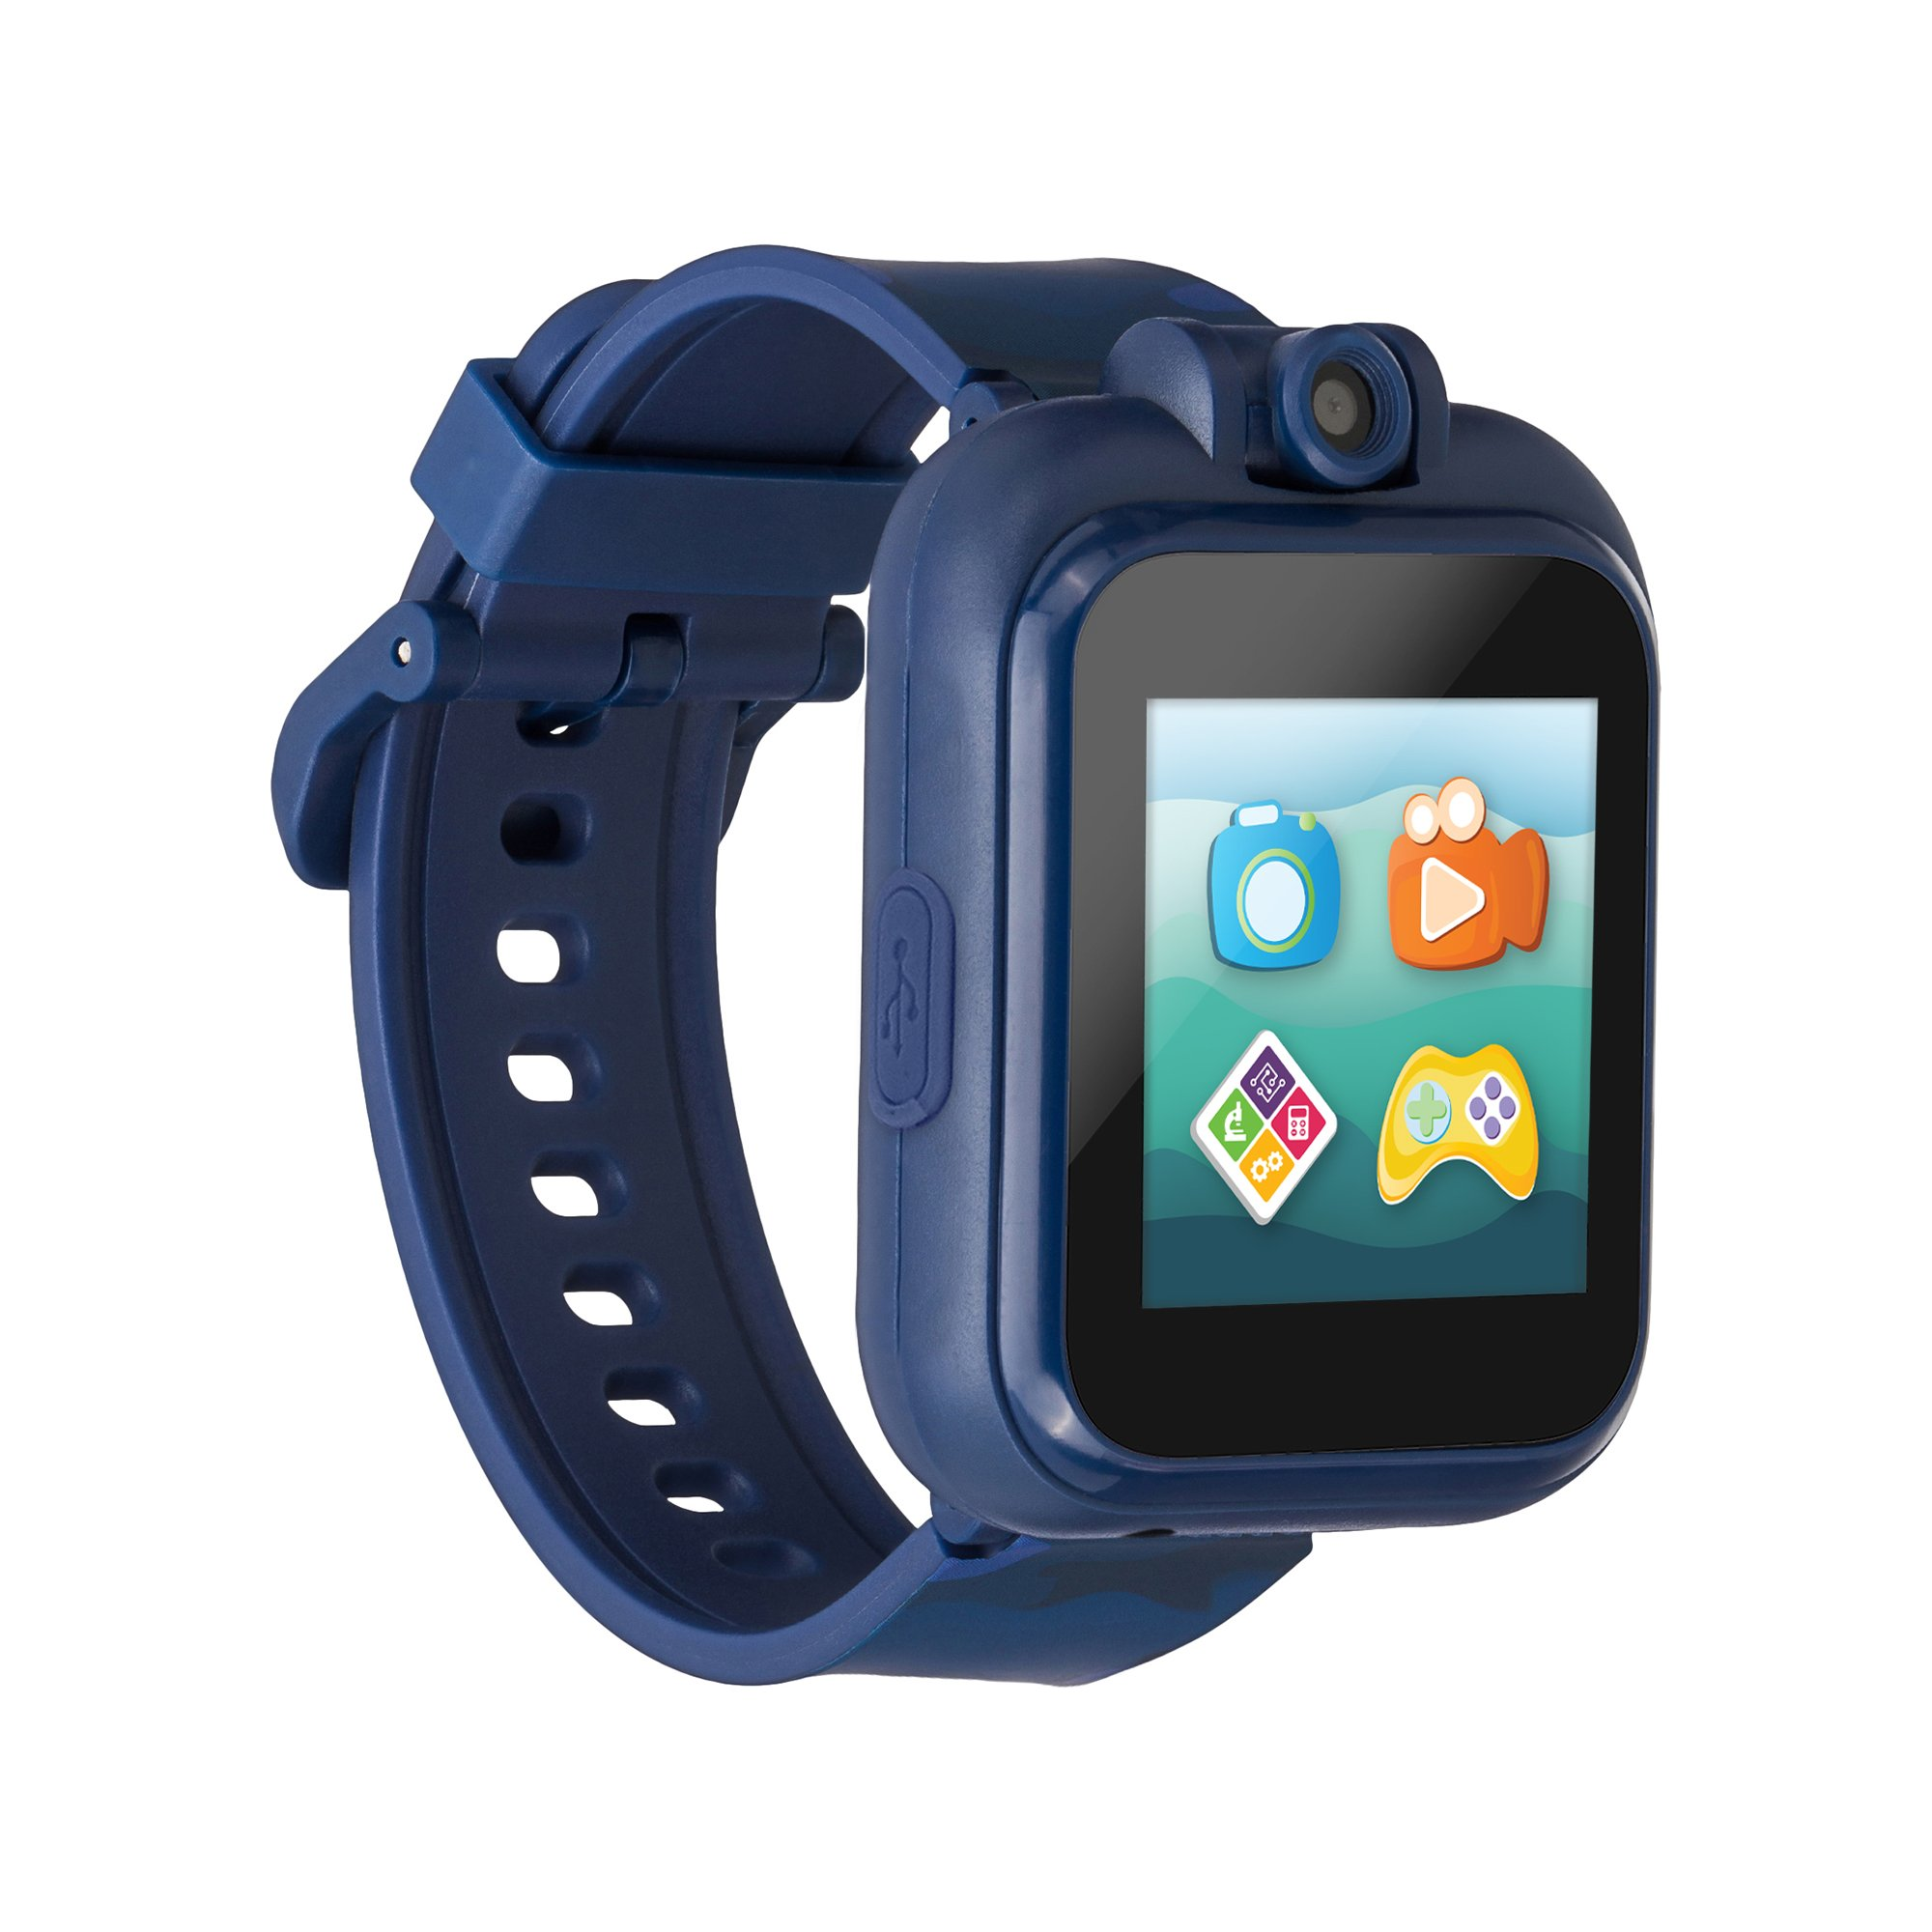 PlayZoom 2 smart watch for kids – touch screen, blue camouflage band (Walmart)